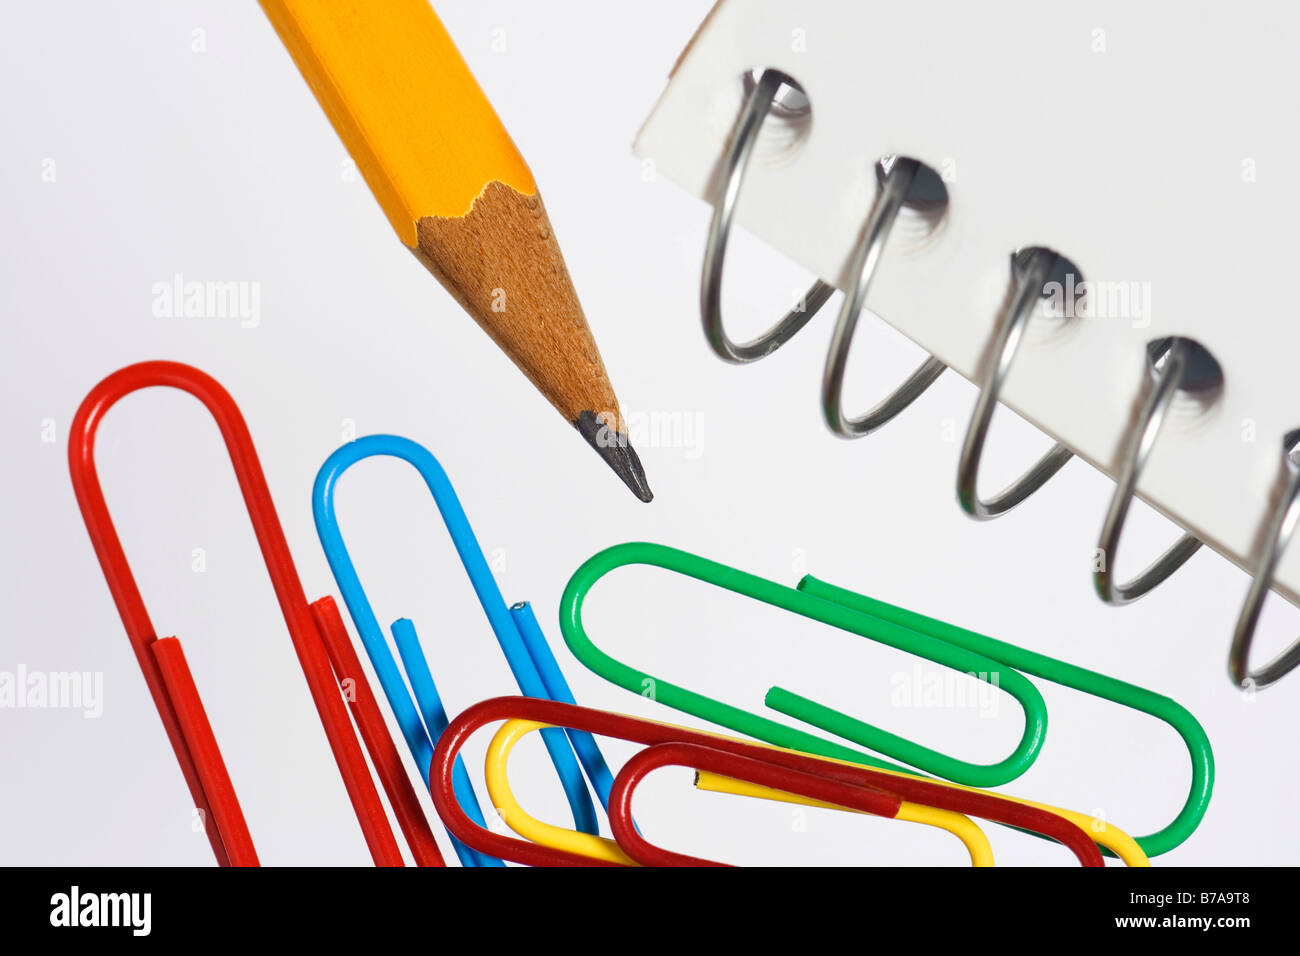 Colored paper clips, pencil and spiral notebook, detail - Stock Image